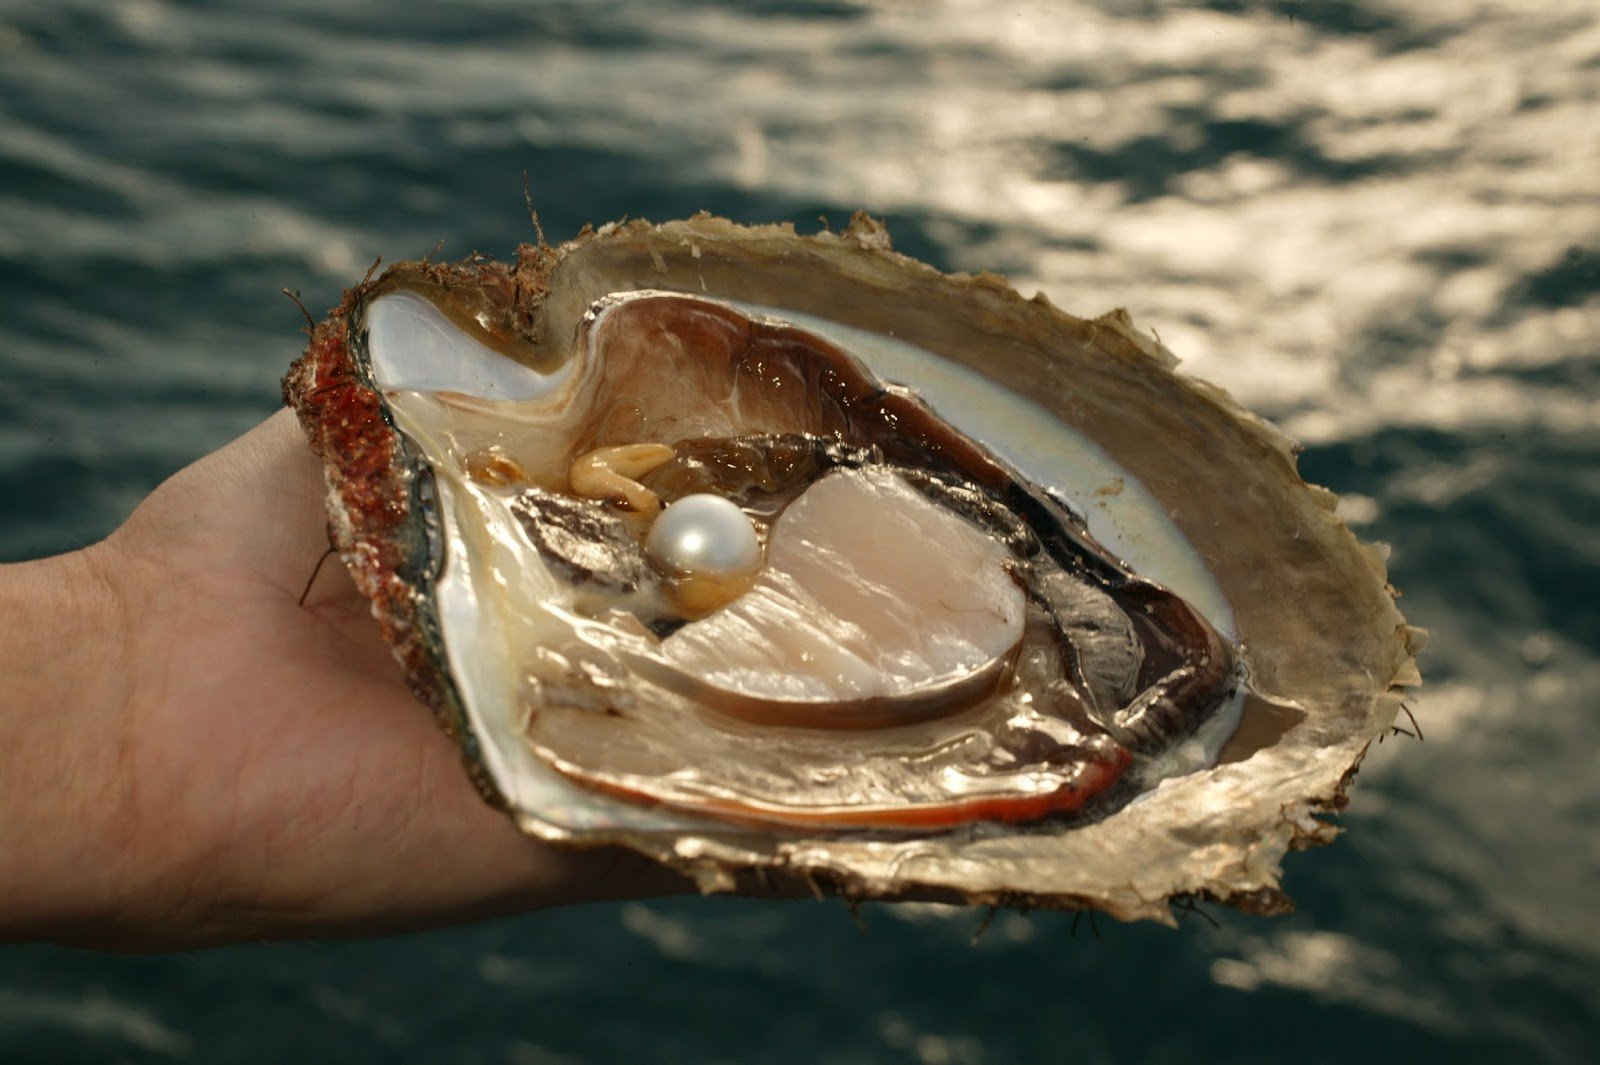 pearls from Q8: Do Pearls Really Come From Oysters?